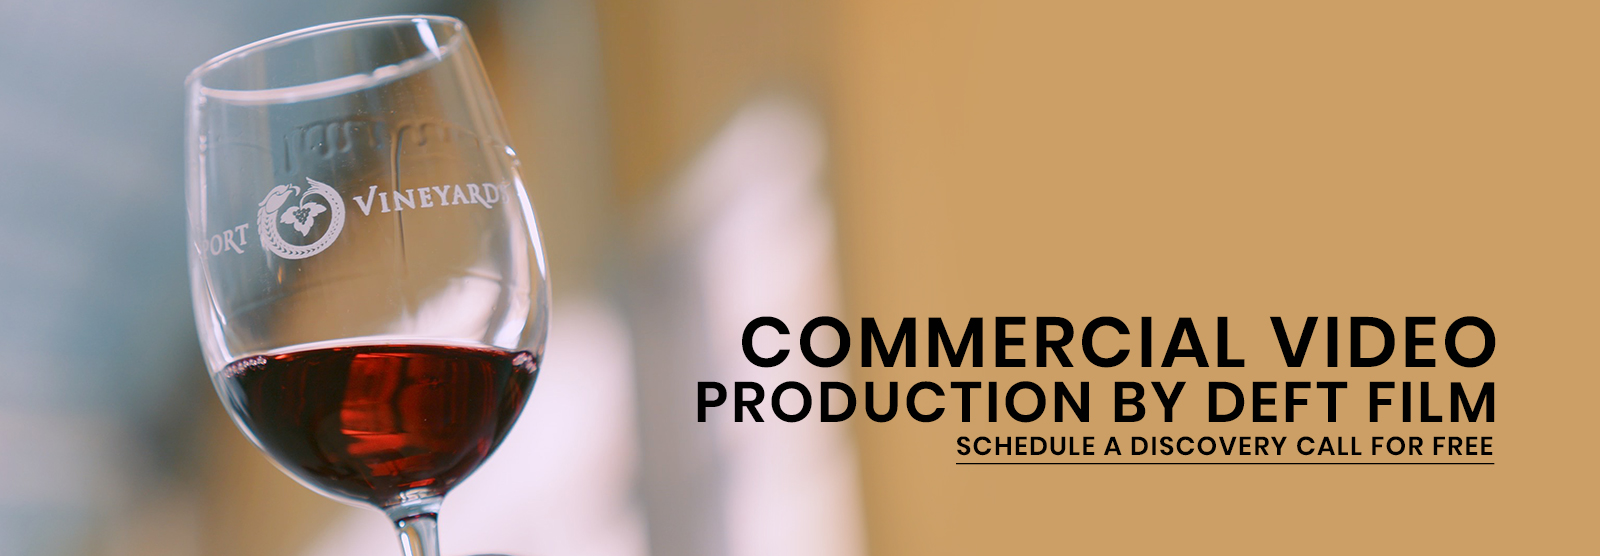 Commercial Video Production by Deft Film